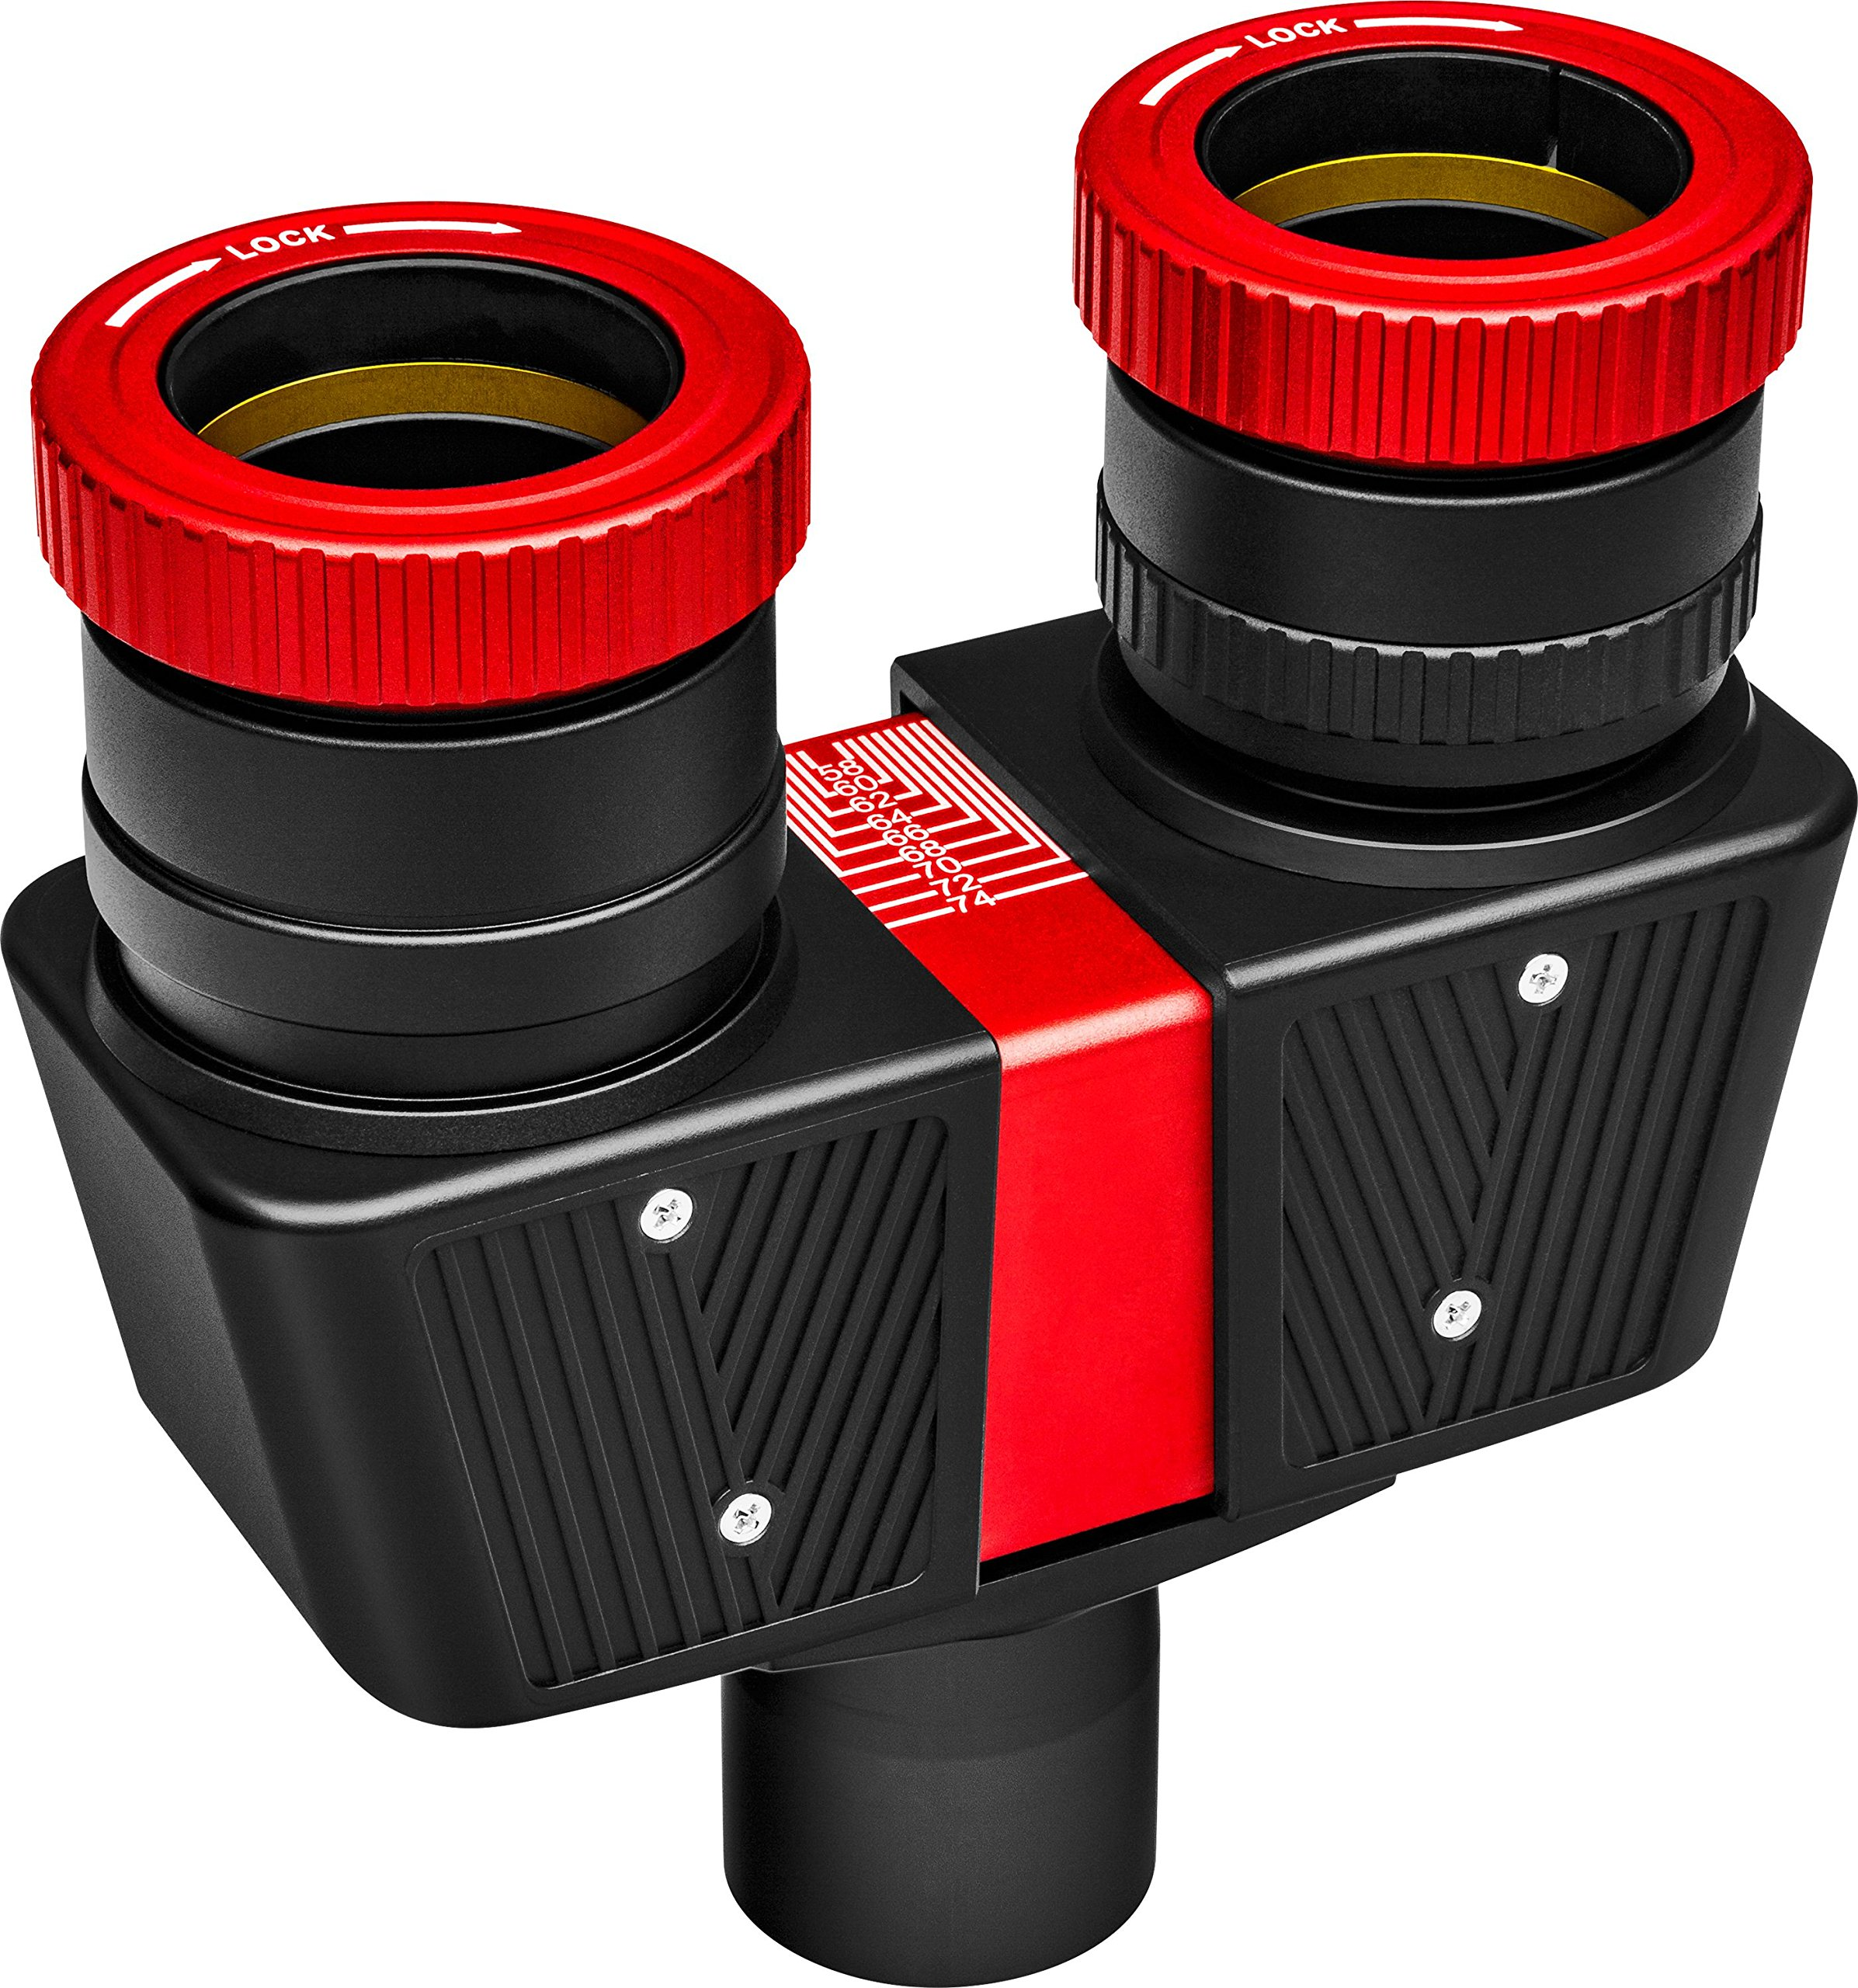 Orion 52054 Premium Telescope Binocular Viewer, Black with Red Trim by Orion